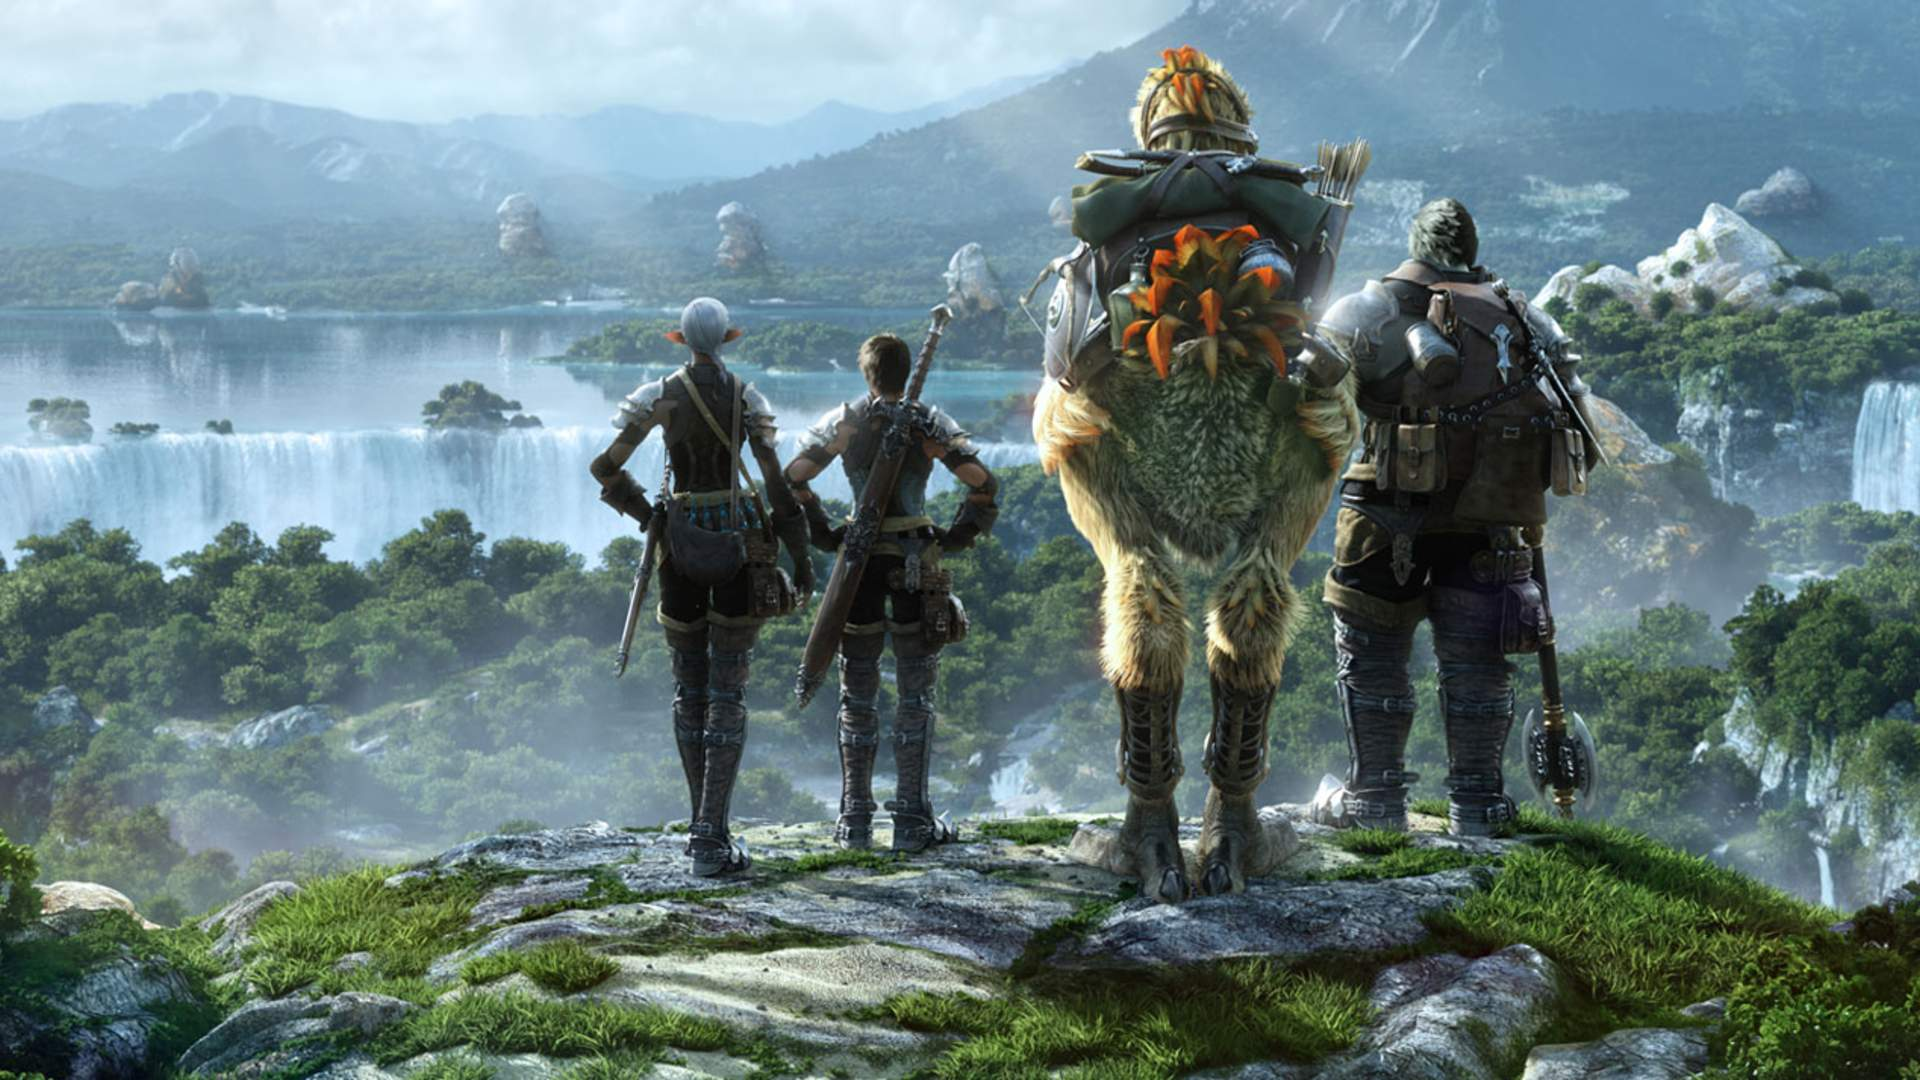 New Final Fantasy XIV Update To Add New Content